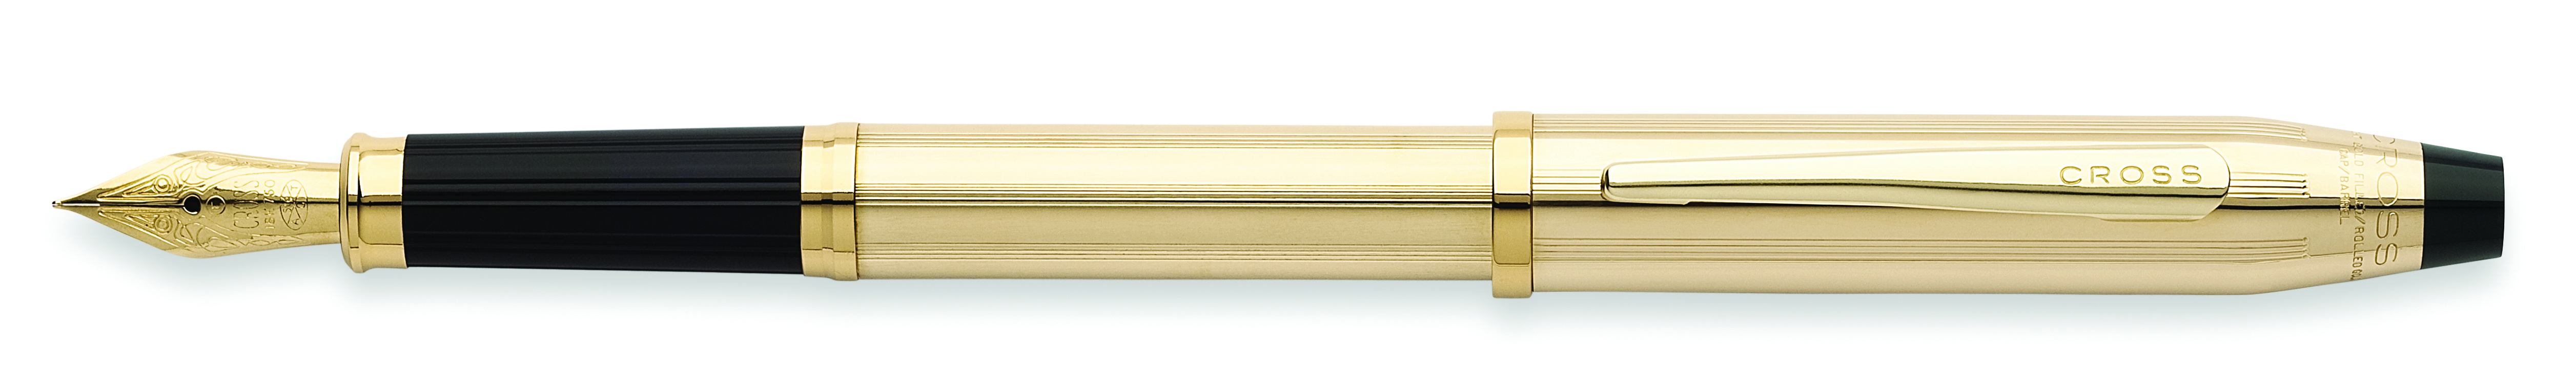 Century II Precious Metals 10KT Gold Filled/Rolled Fountain Pen